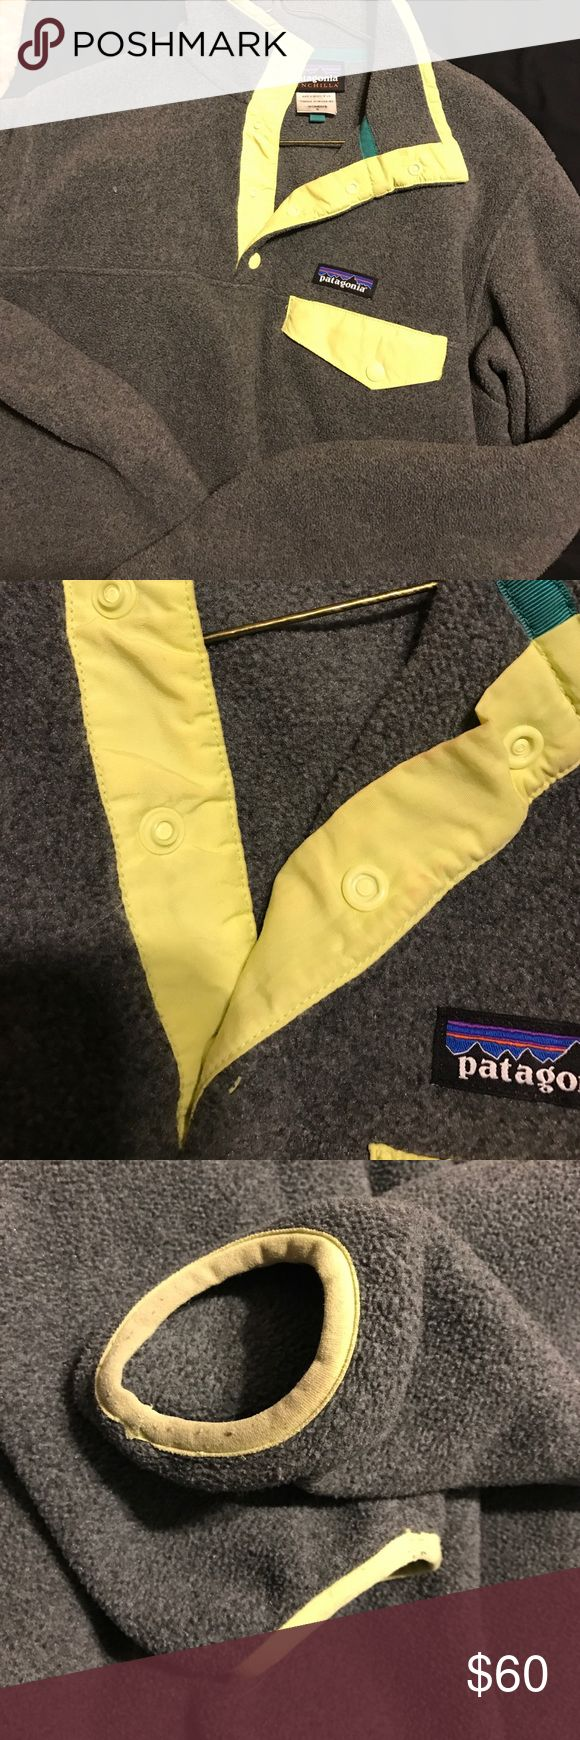 Patagonia fleece Good condition has a few signs of wear (shown in pictures) but otherwise in great condition! Patagonia Tops Sweatshirts & Hoodies